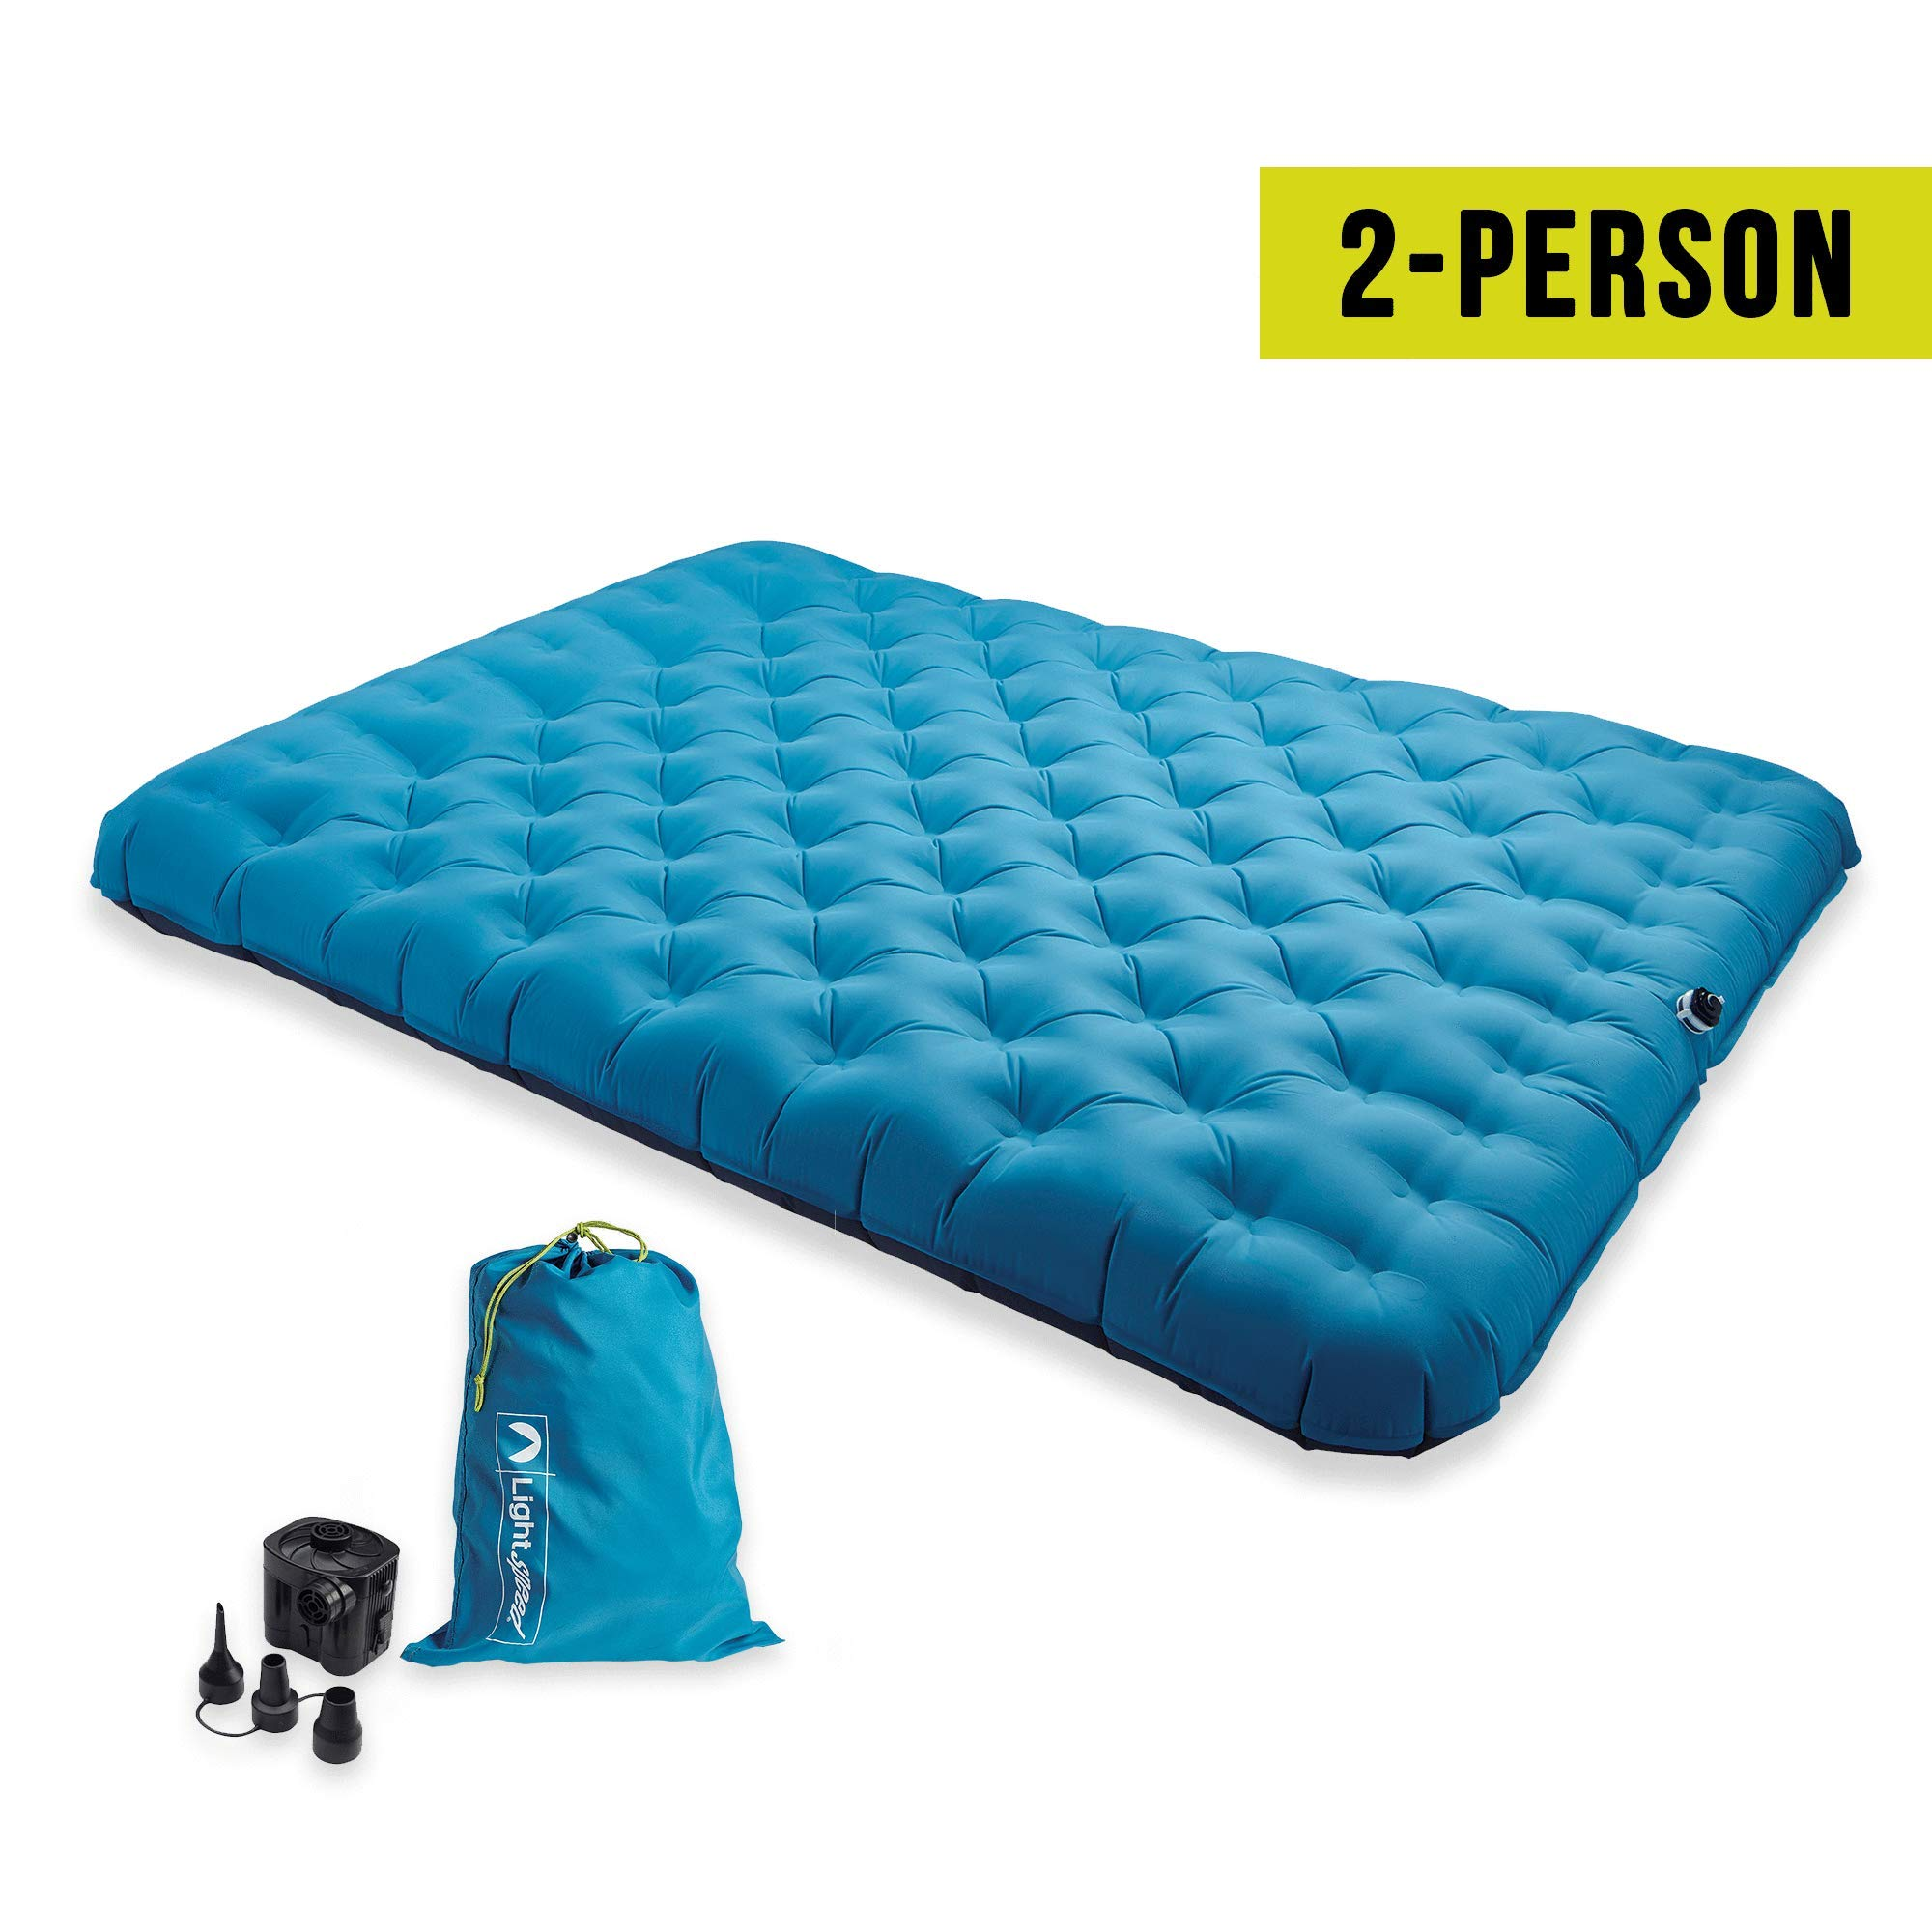 Lightspeed Outdoors 2 Person PVC-Free Air Bed Mattress for Camping and Travel (Light Blue) by Lightspeed Outdoors